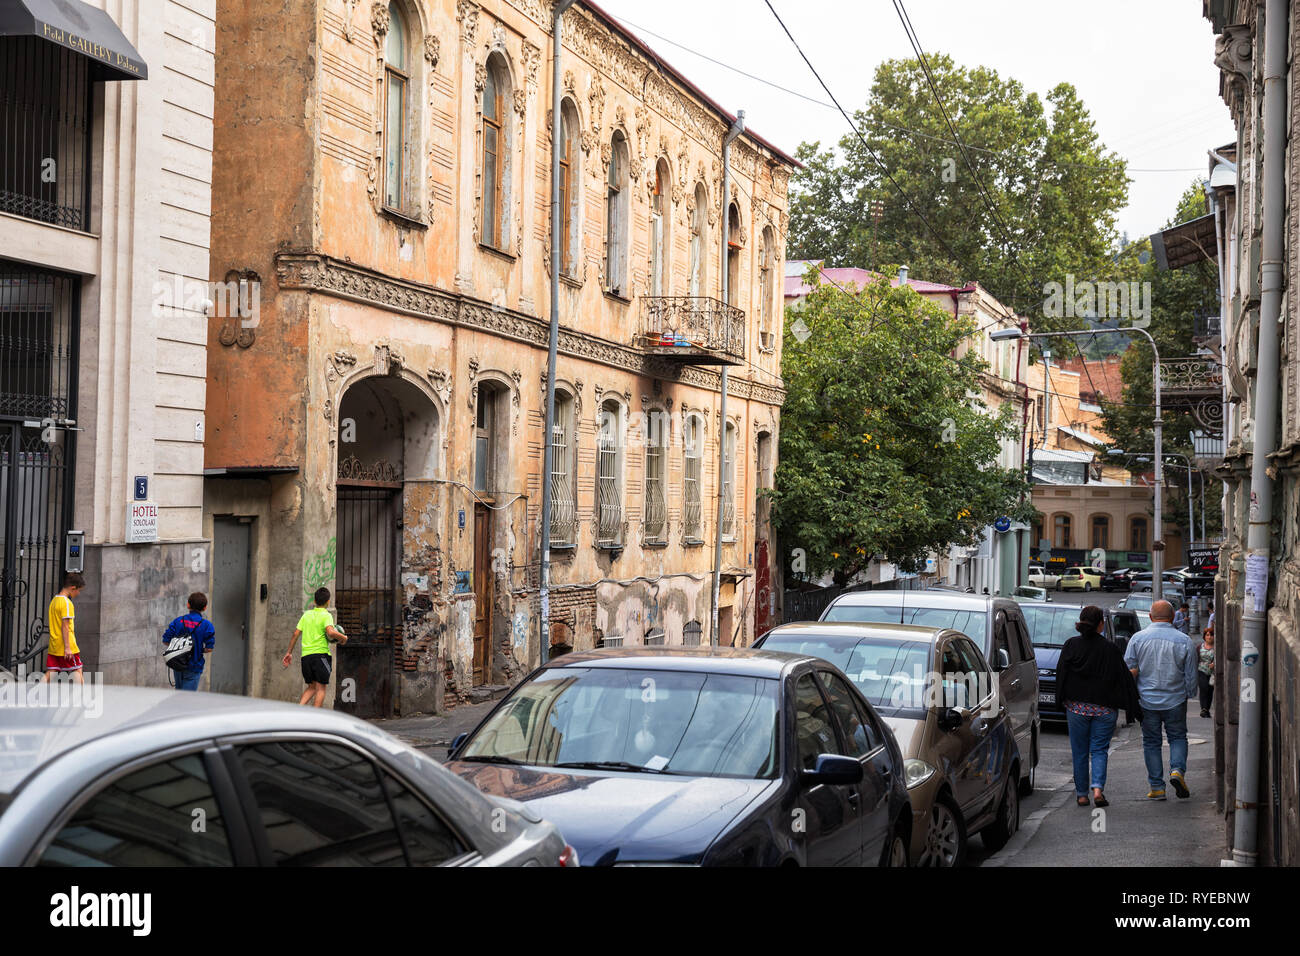 TBILISI, GEORGIA - SEPTEMBER 22, 2018: Old mansion with stucco decorations in the old town, Sololaki district, Pavle Ingorokva street Stock Photo